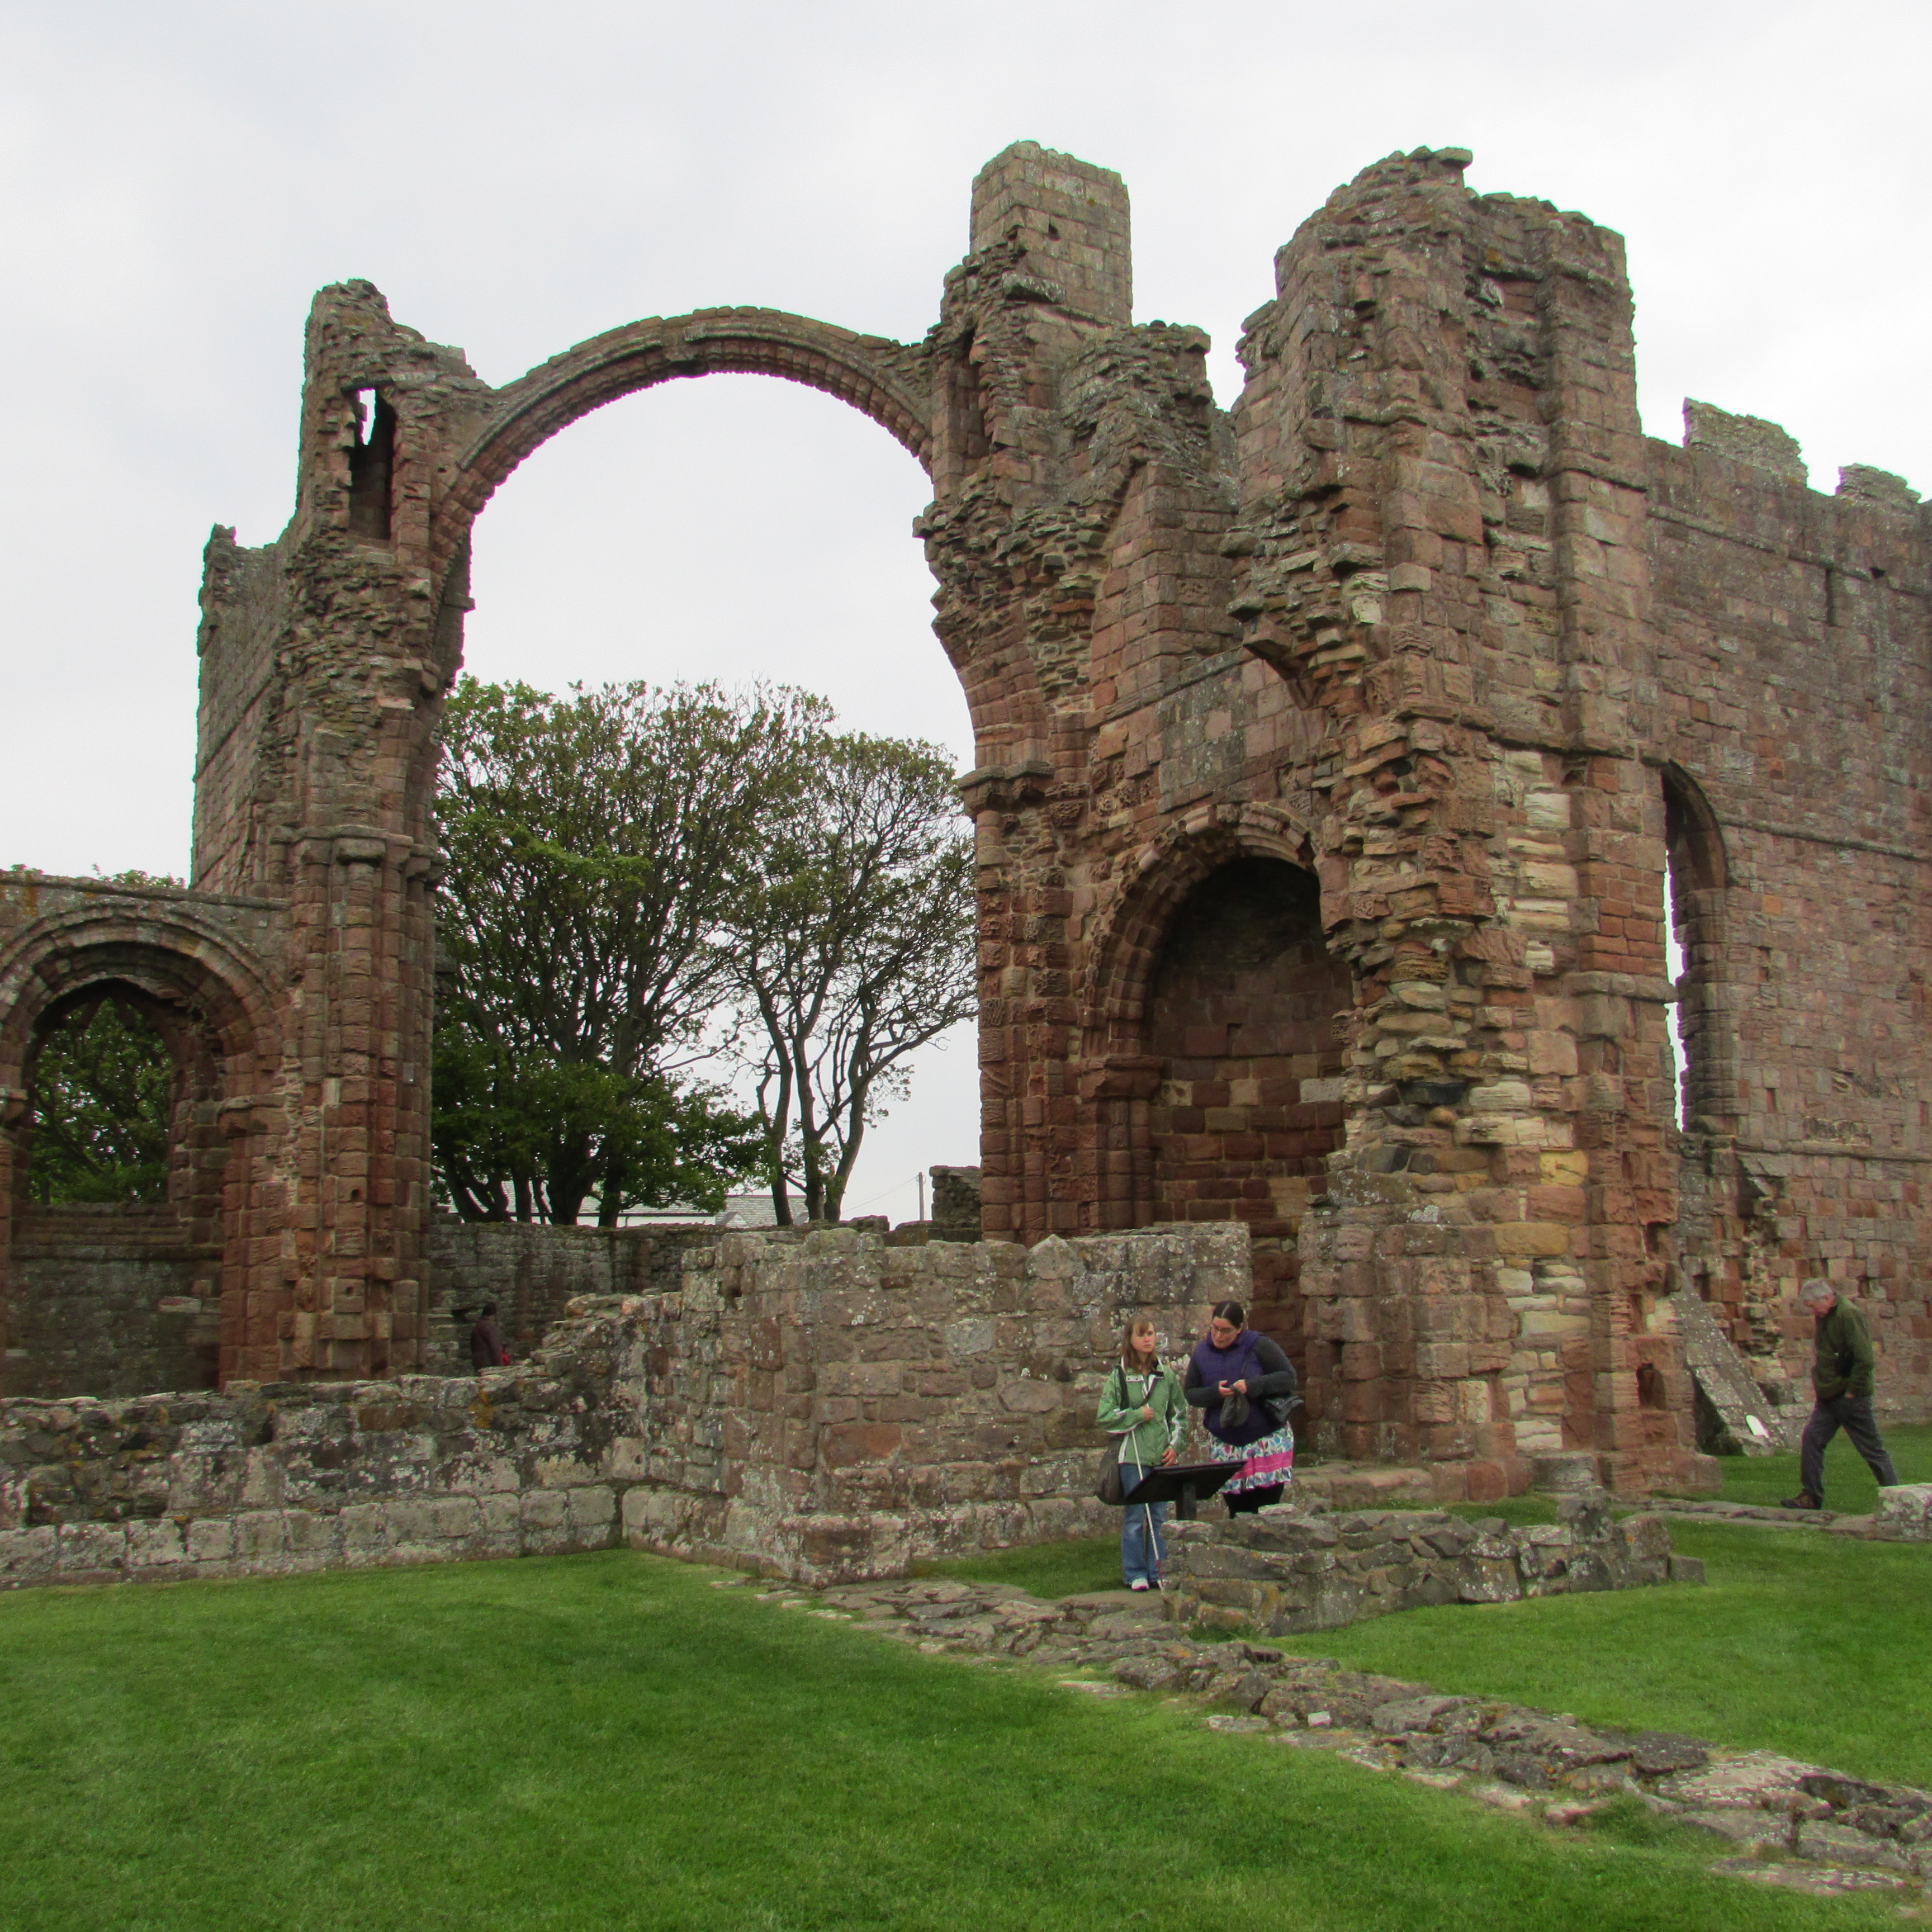 Lindisfarne crumbling arches